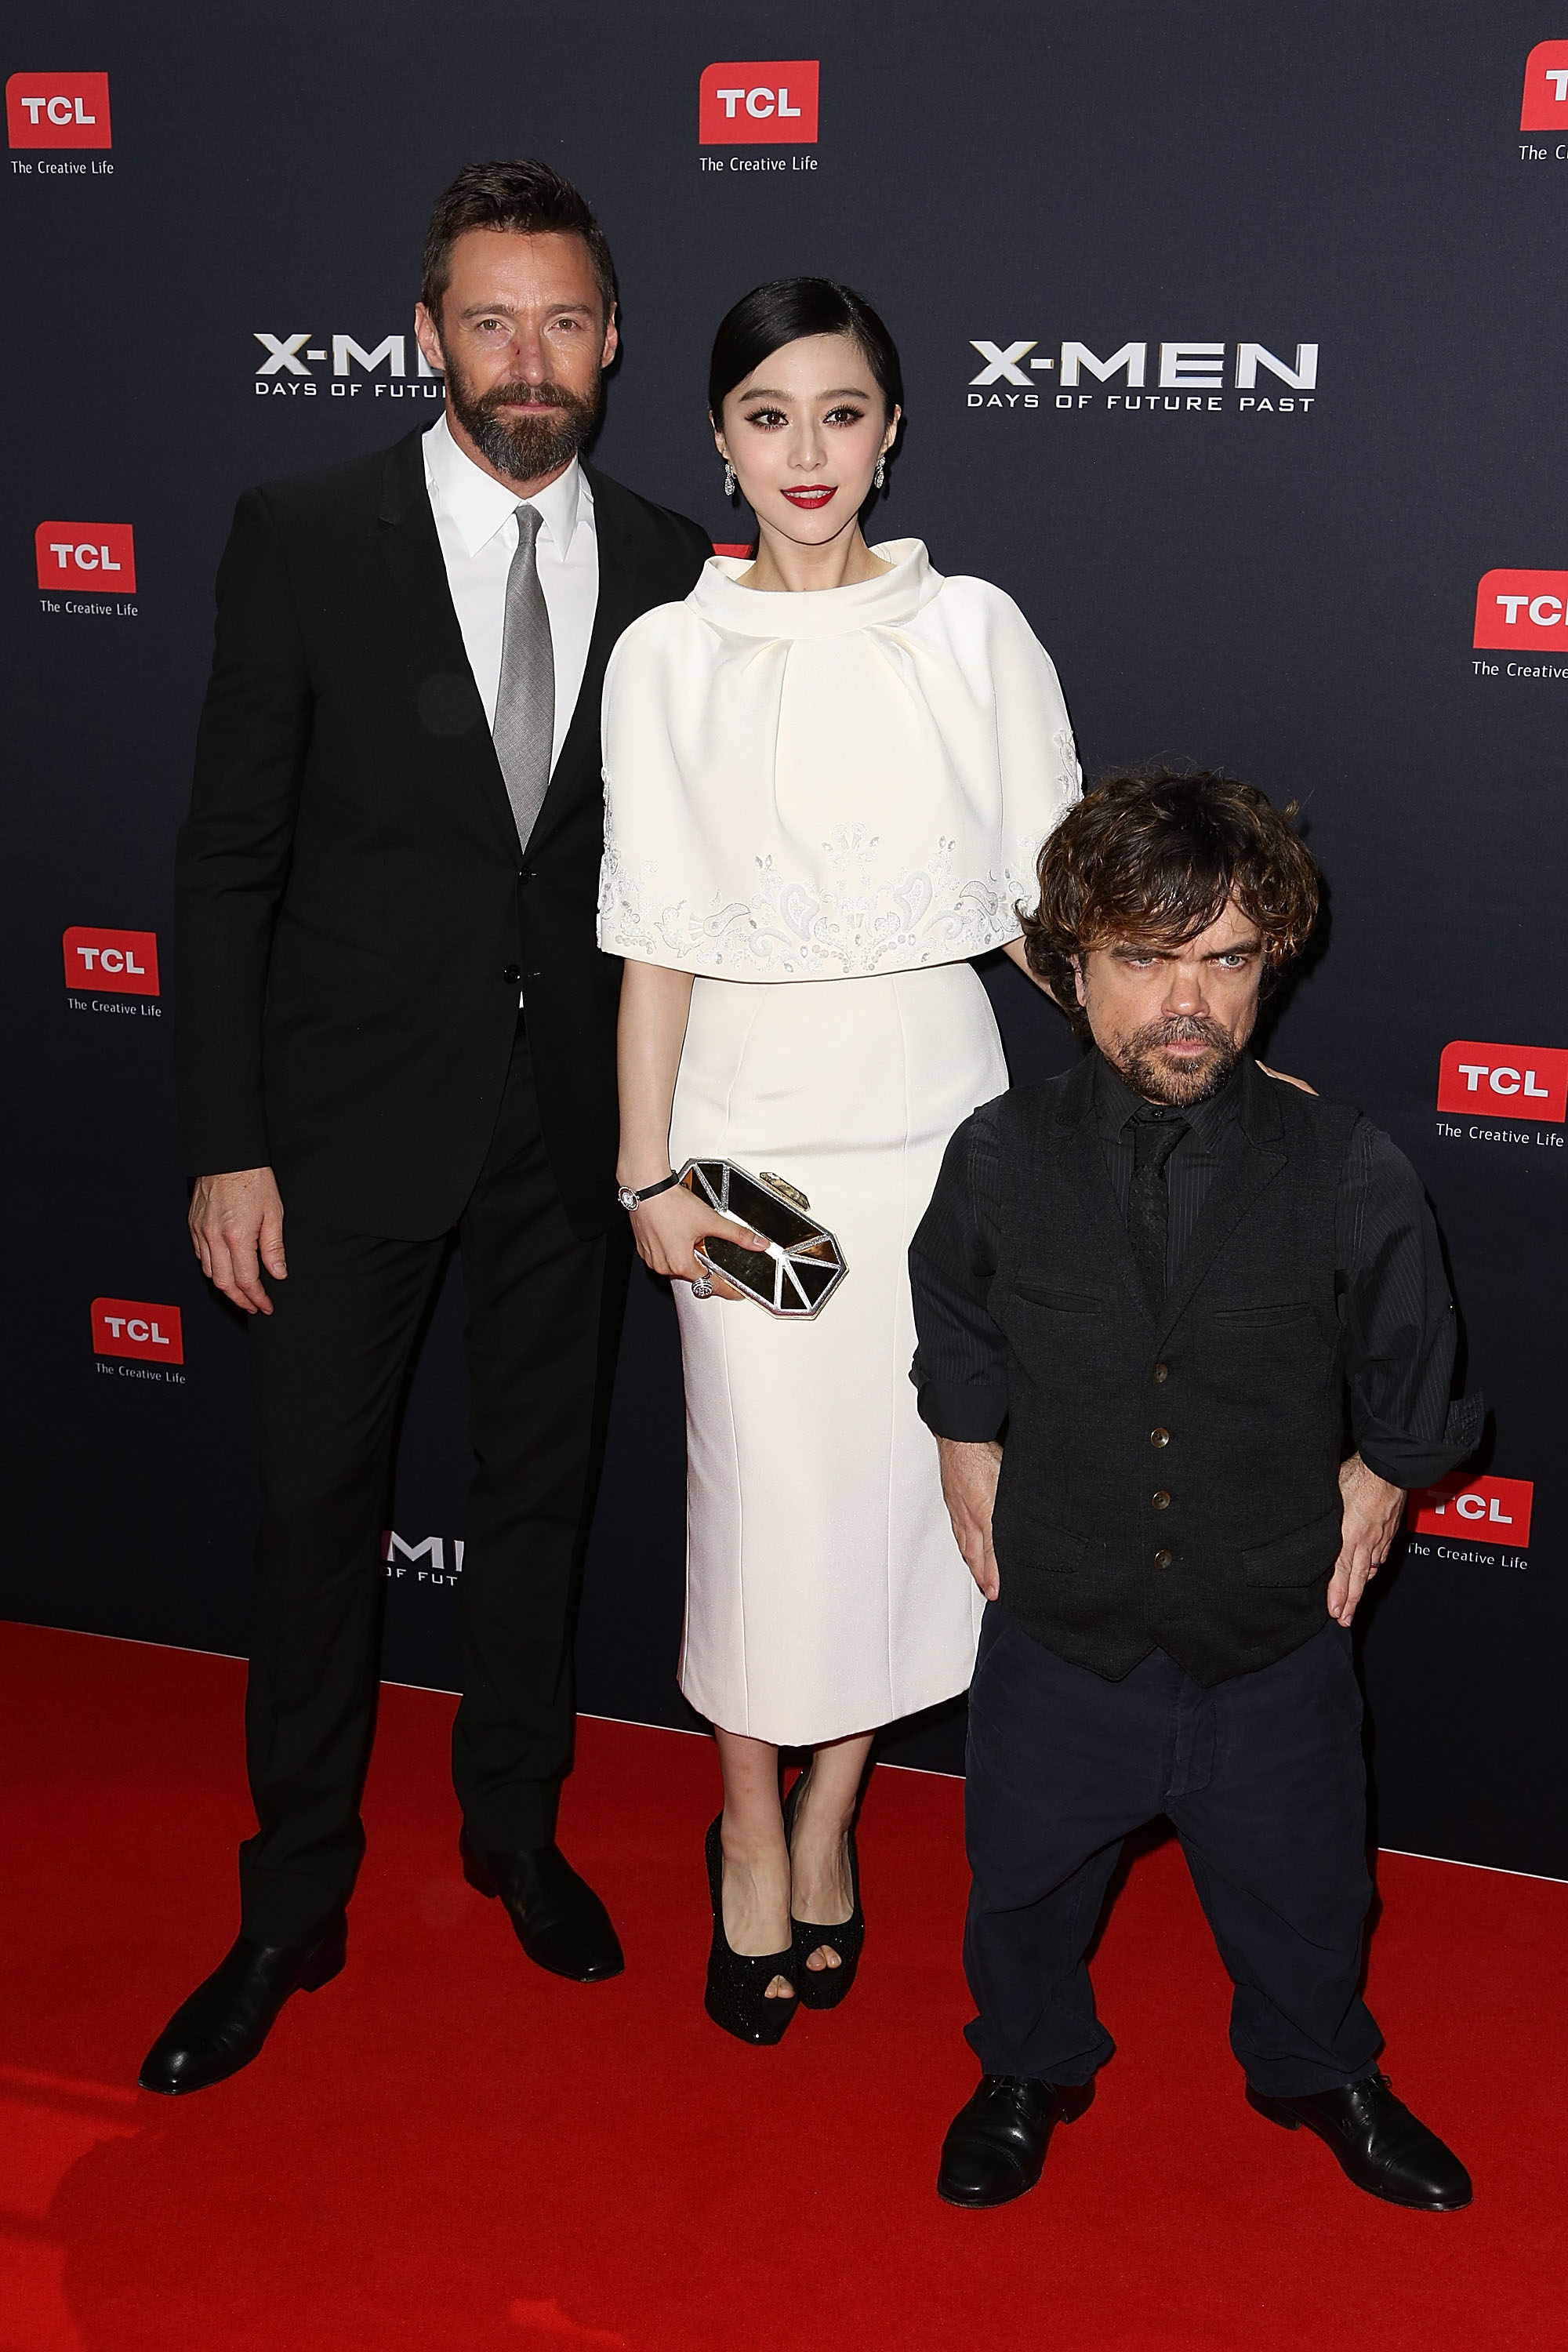 (L-R) Hugh Jackman, Fan Bingbing, and Peter Dinklage pose as they arrive at the Australian premiere of 'X-Men: Days of Future Past' (Source: Graham Denholm/Getty Images)